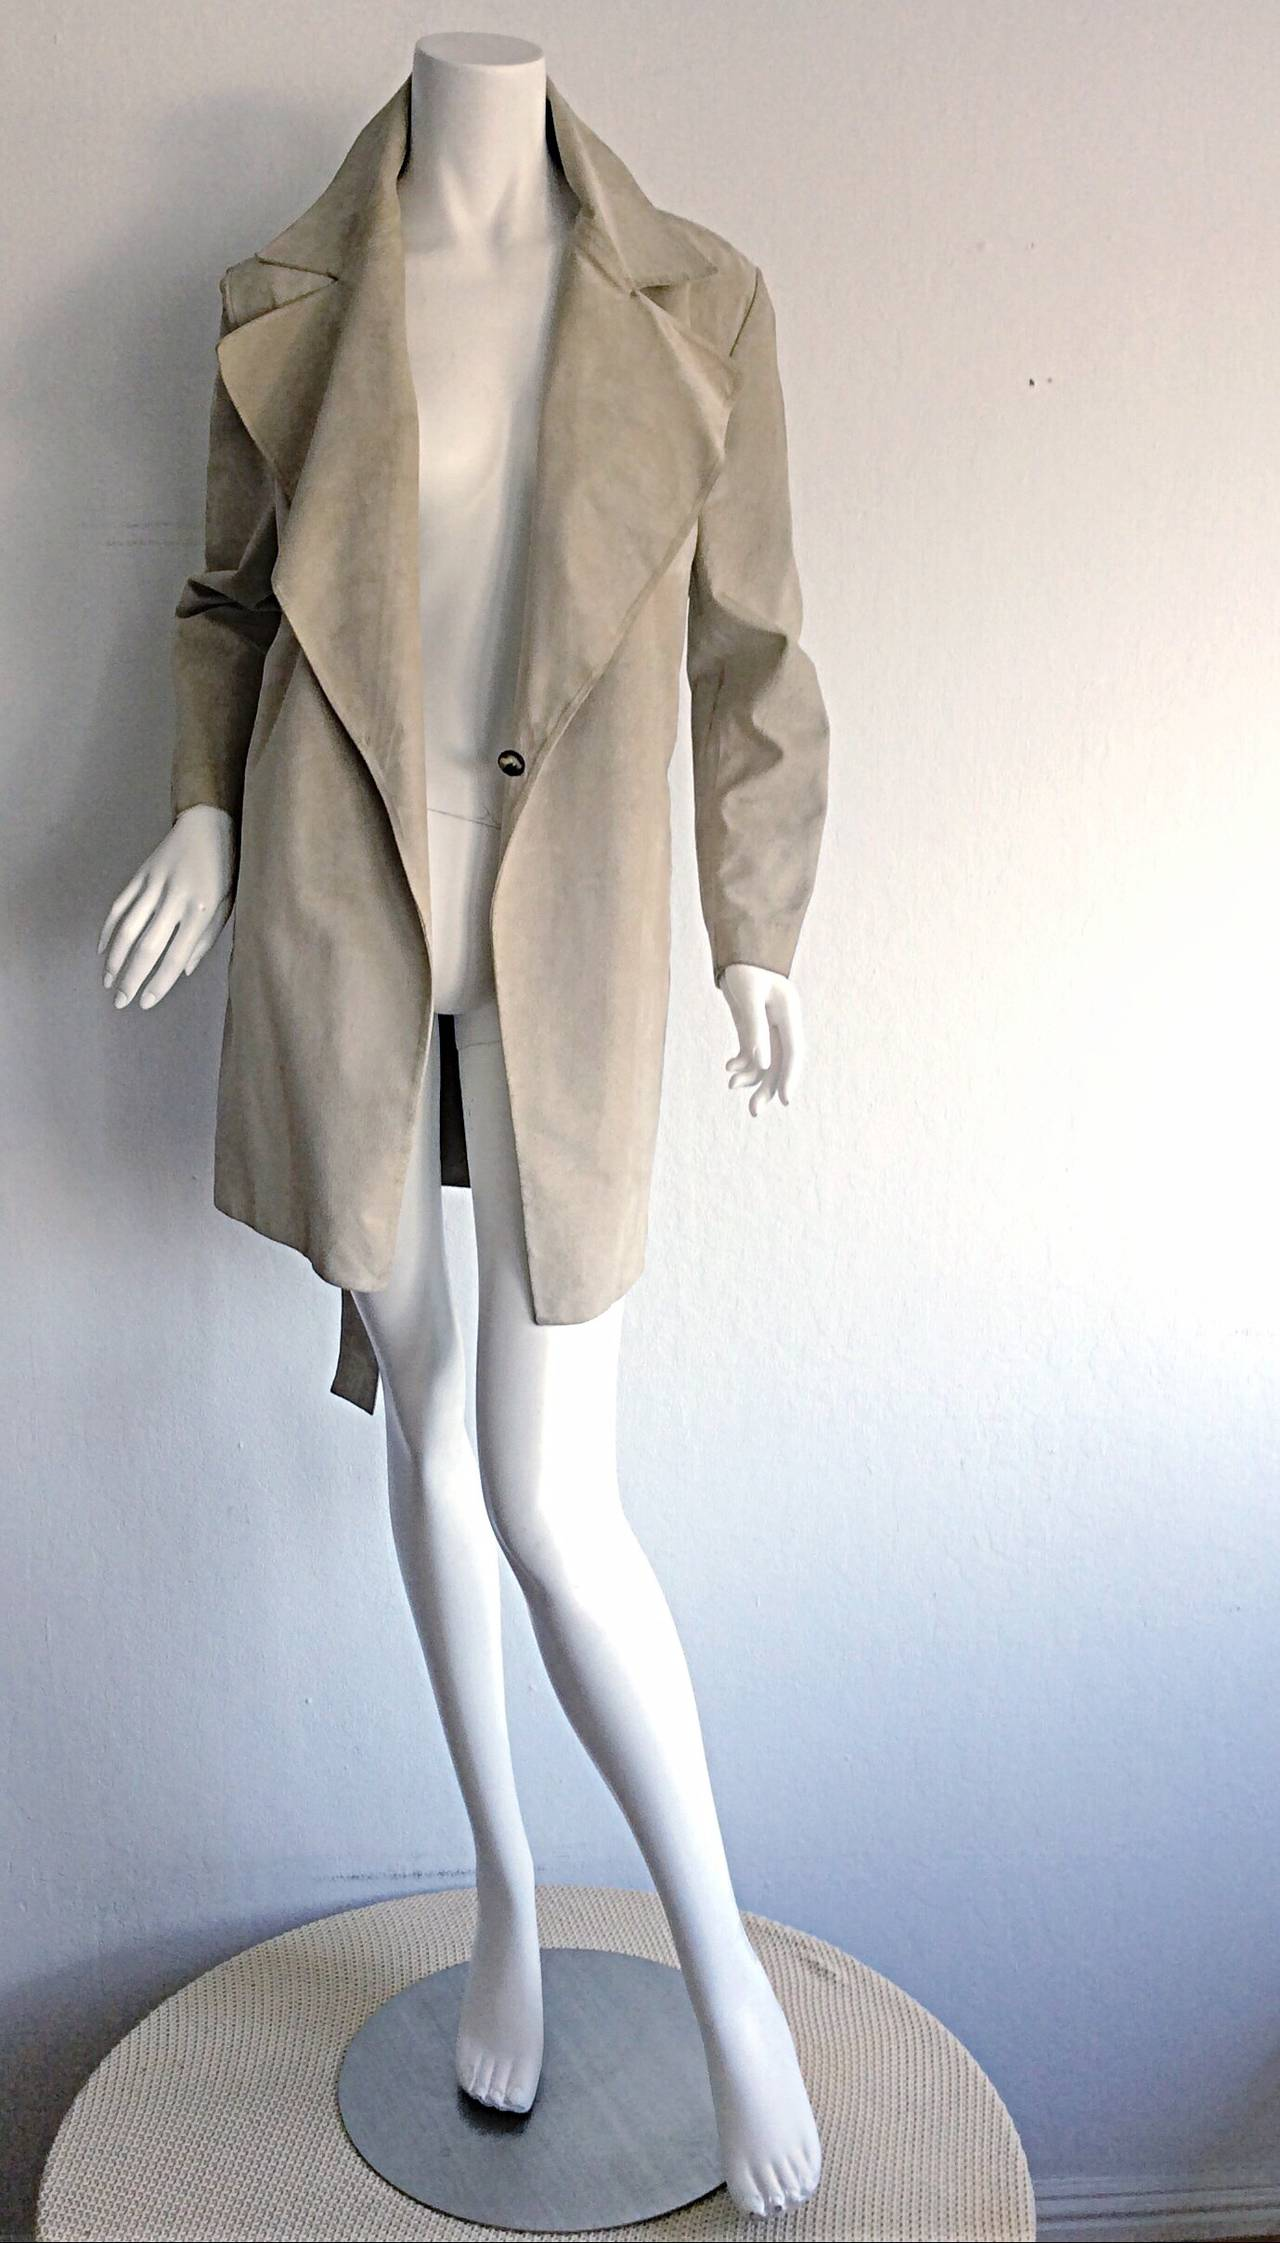 Incredible vintage Gucci late 90s (by Tom Ford) khaki butter-soft suede jacket, with tie belt! Classic style, that is a perfect layering piece. Interior button ensures closure. Detachable matching suede belt. Made in Italy. In great condition.